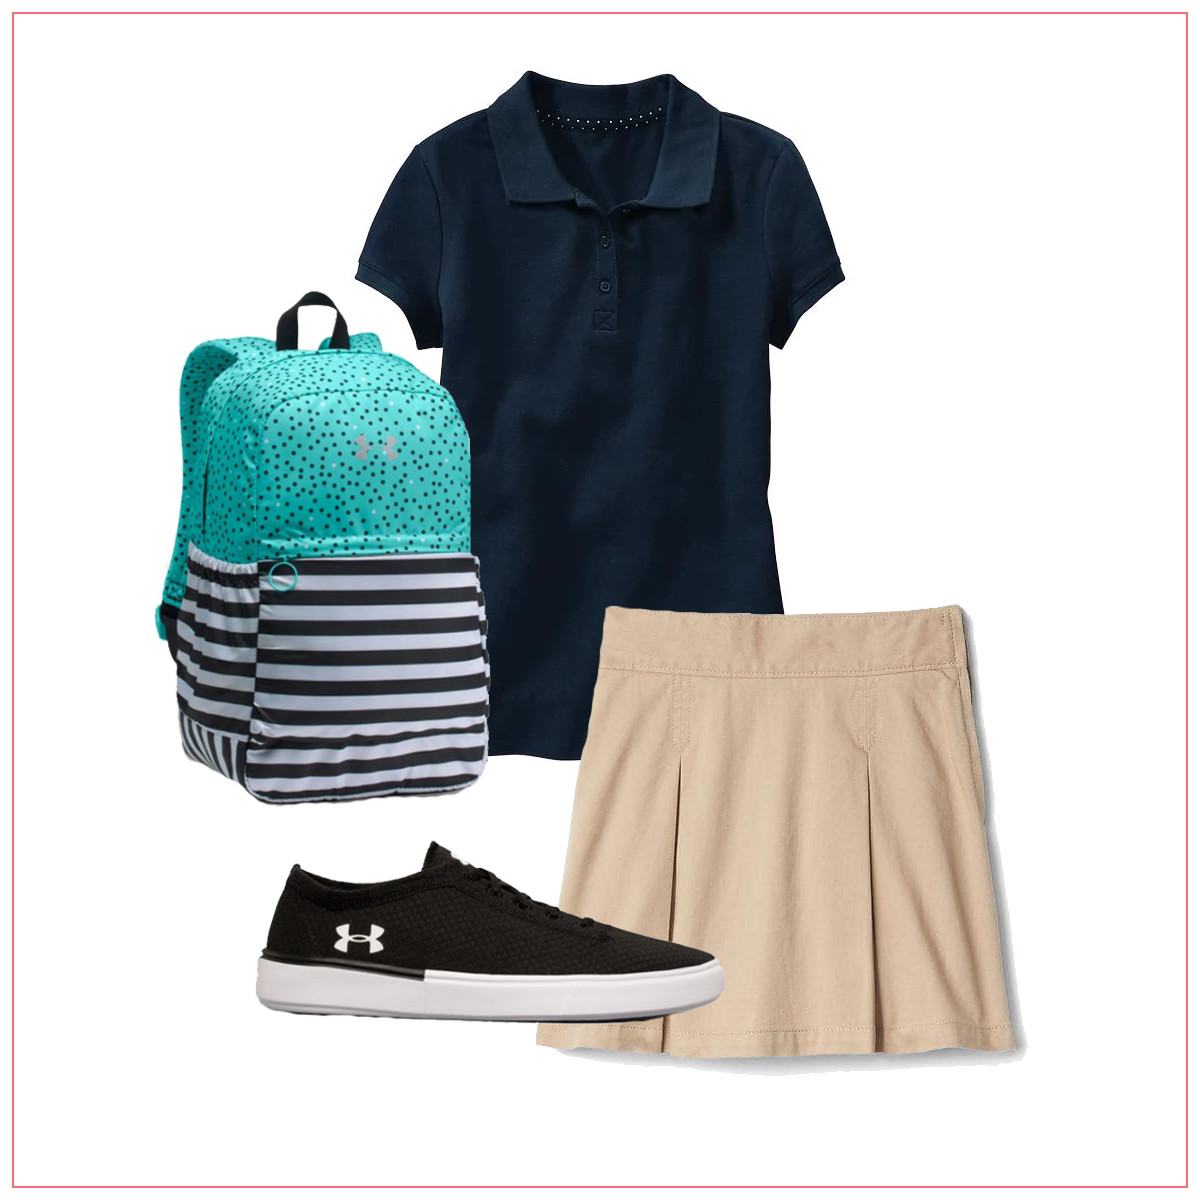 Girls' Back-to-School Outfit Uniform